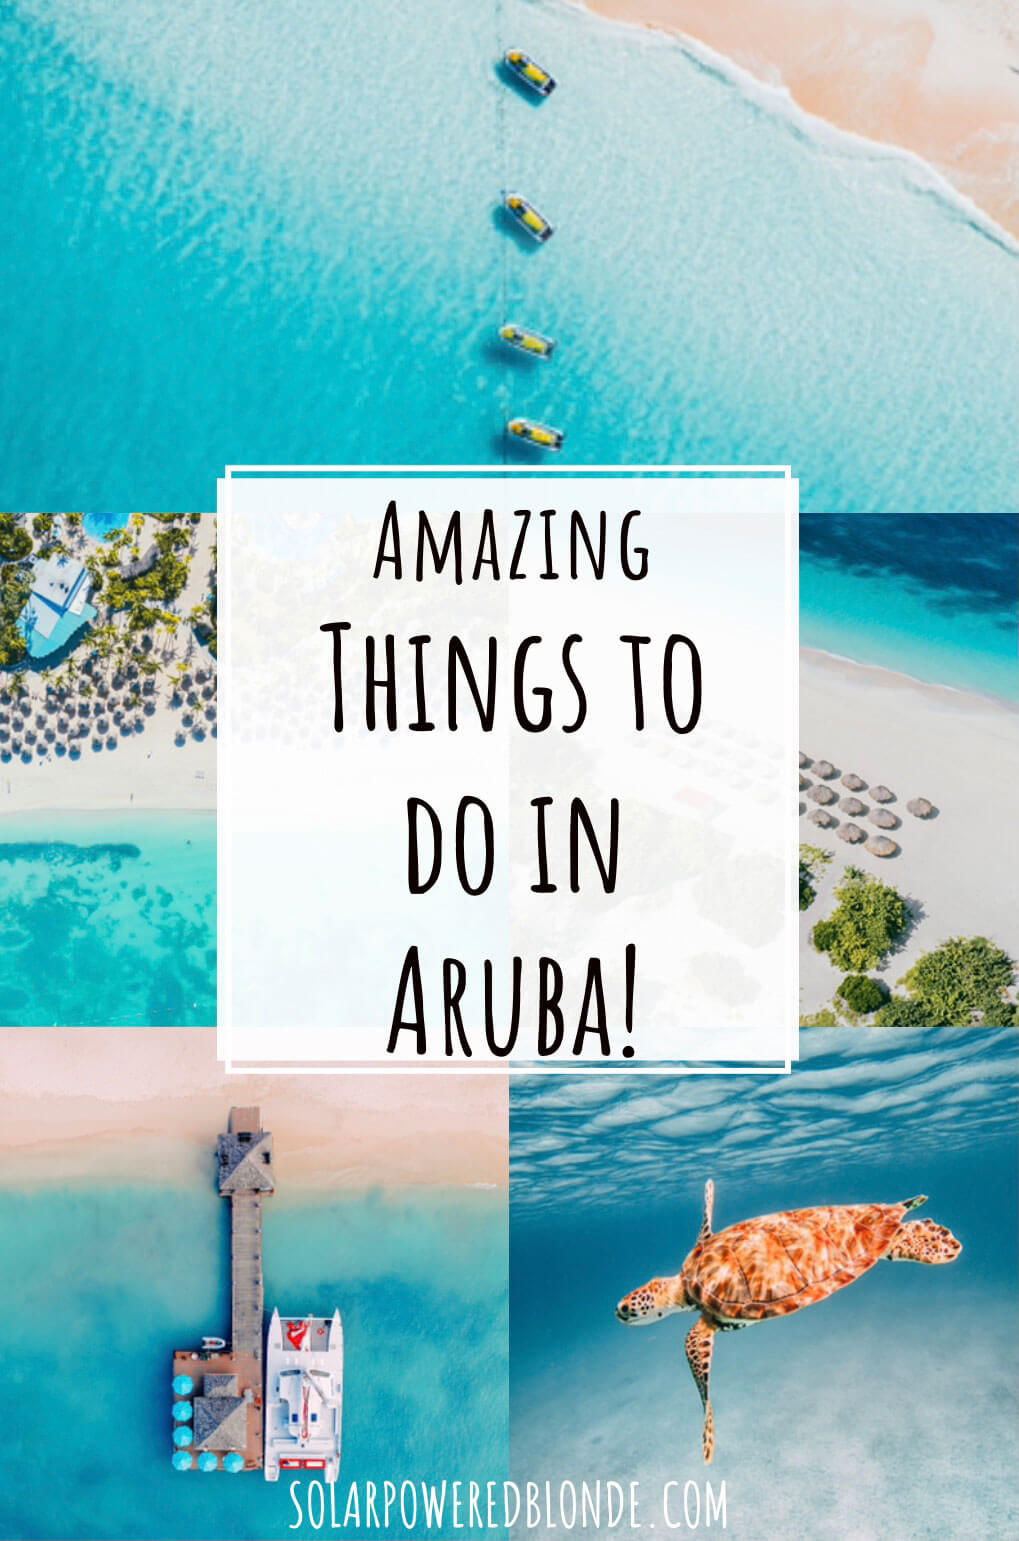 Photos from Aruba for a pinterest graphic